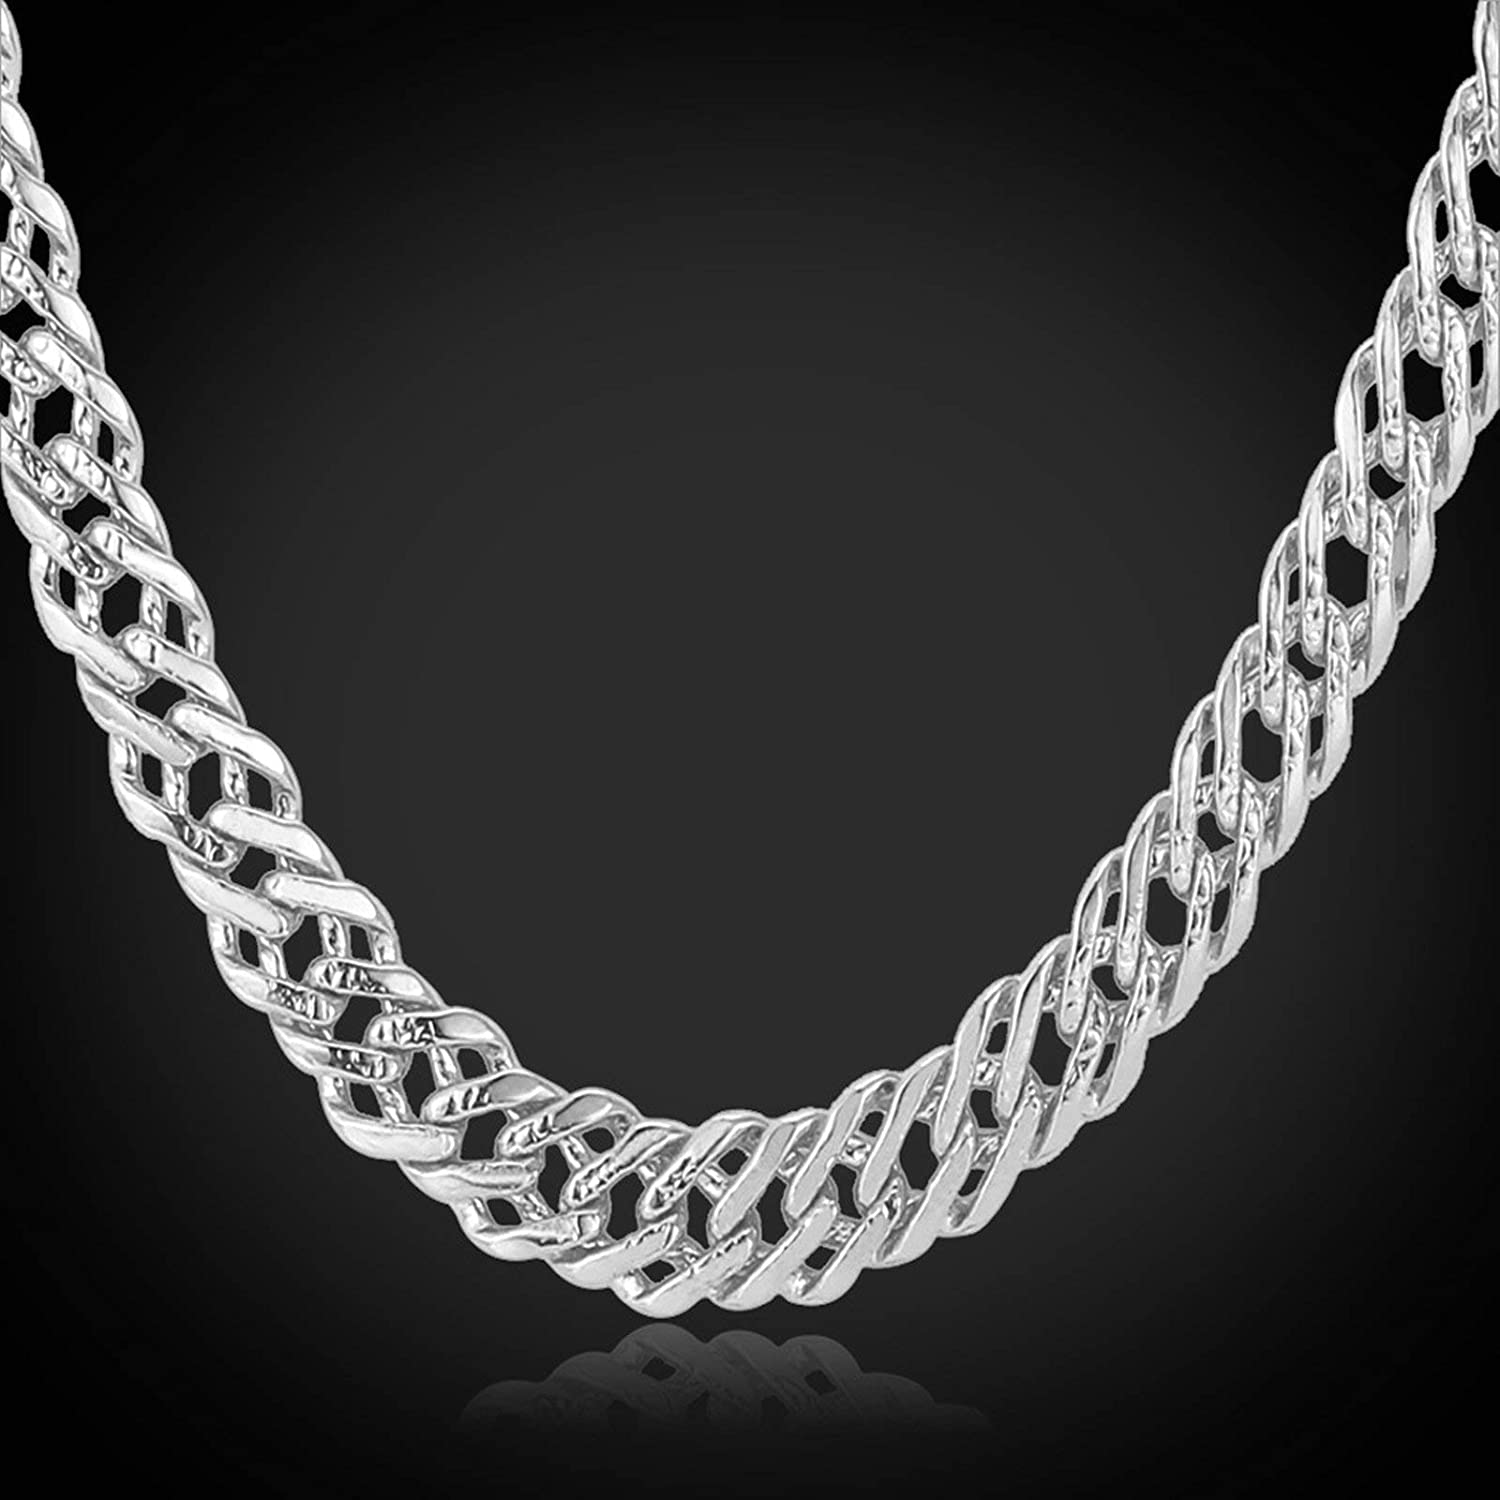 Aooaz Alloy Necklace Mens Silver Chain Necklace Chain Necklaces Jewelry Hip Hop Chain Men L:18-26inch